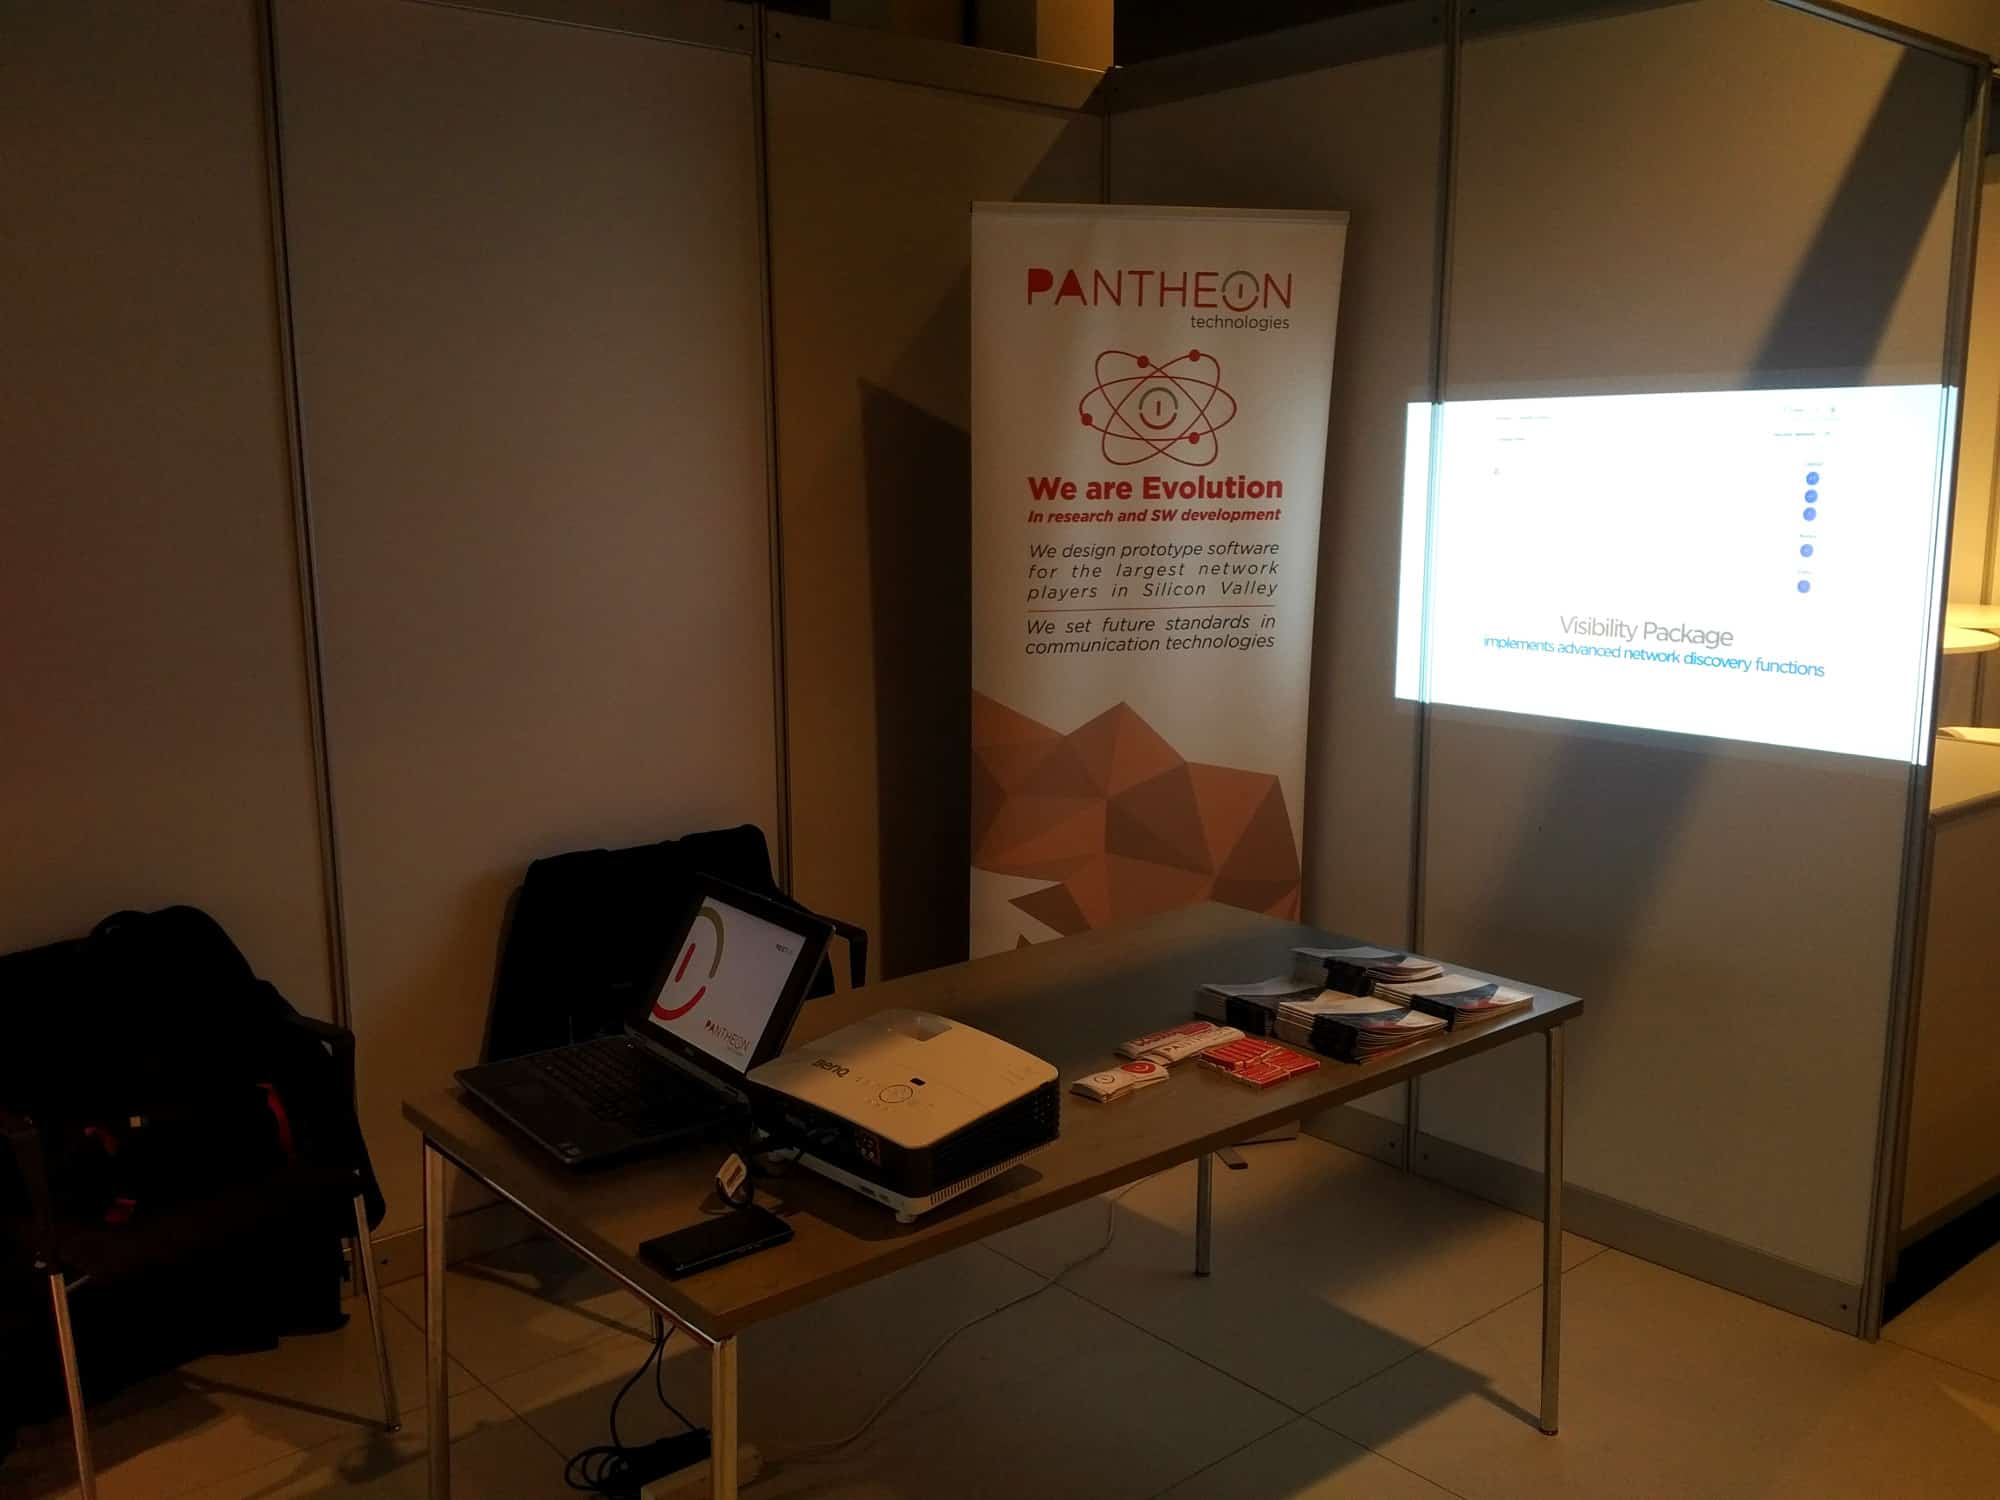 Pantheon Technologies booth @ SDN NFV, Hague